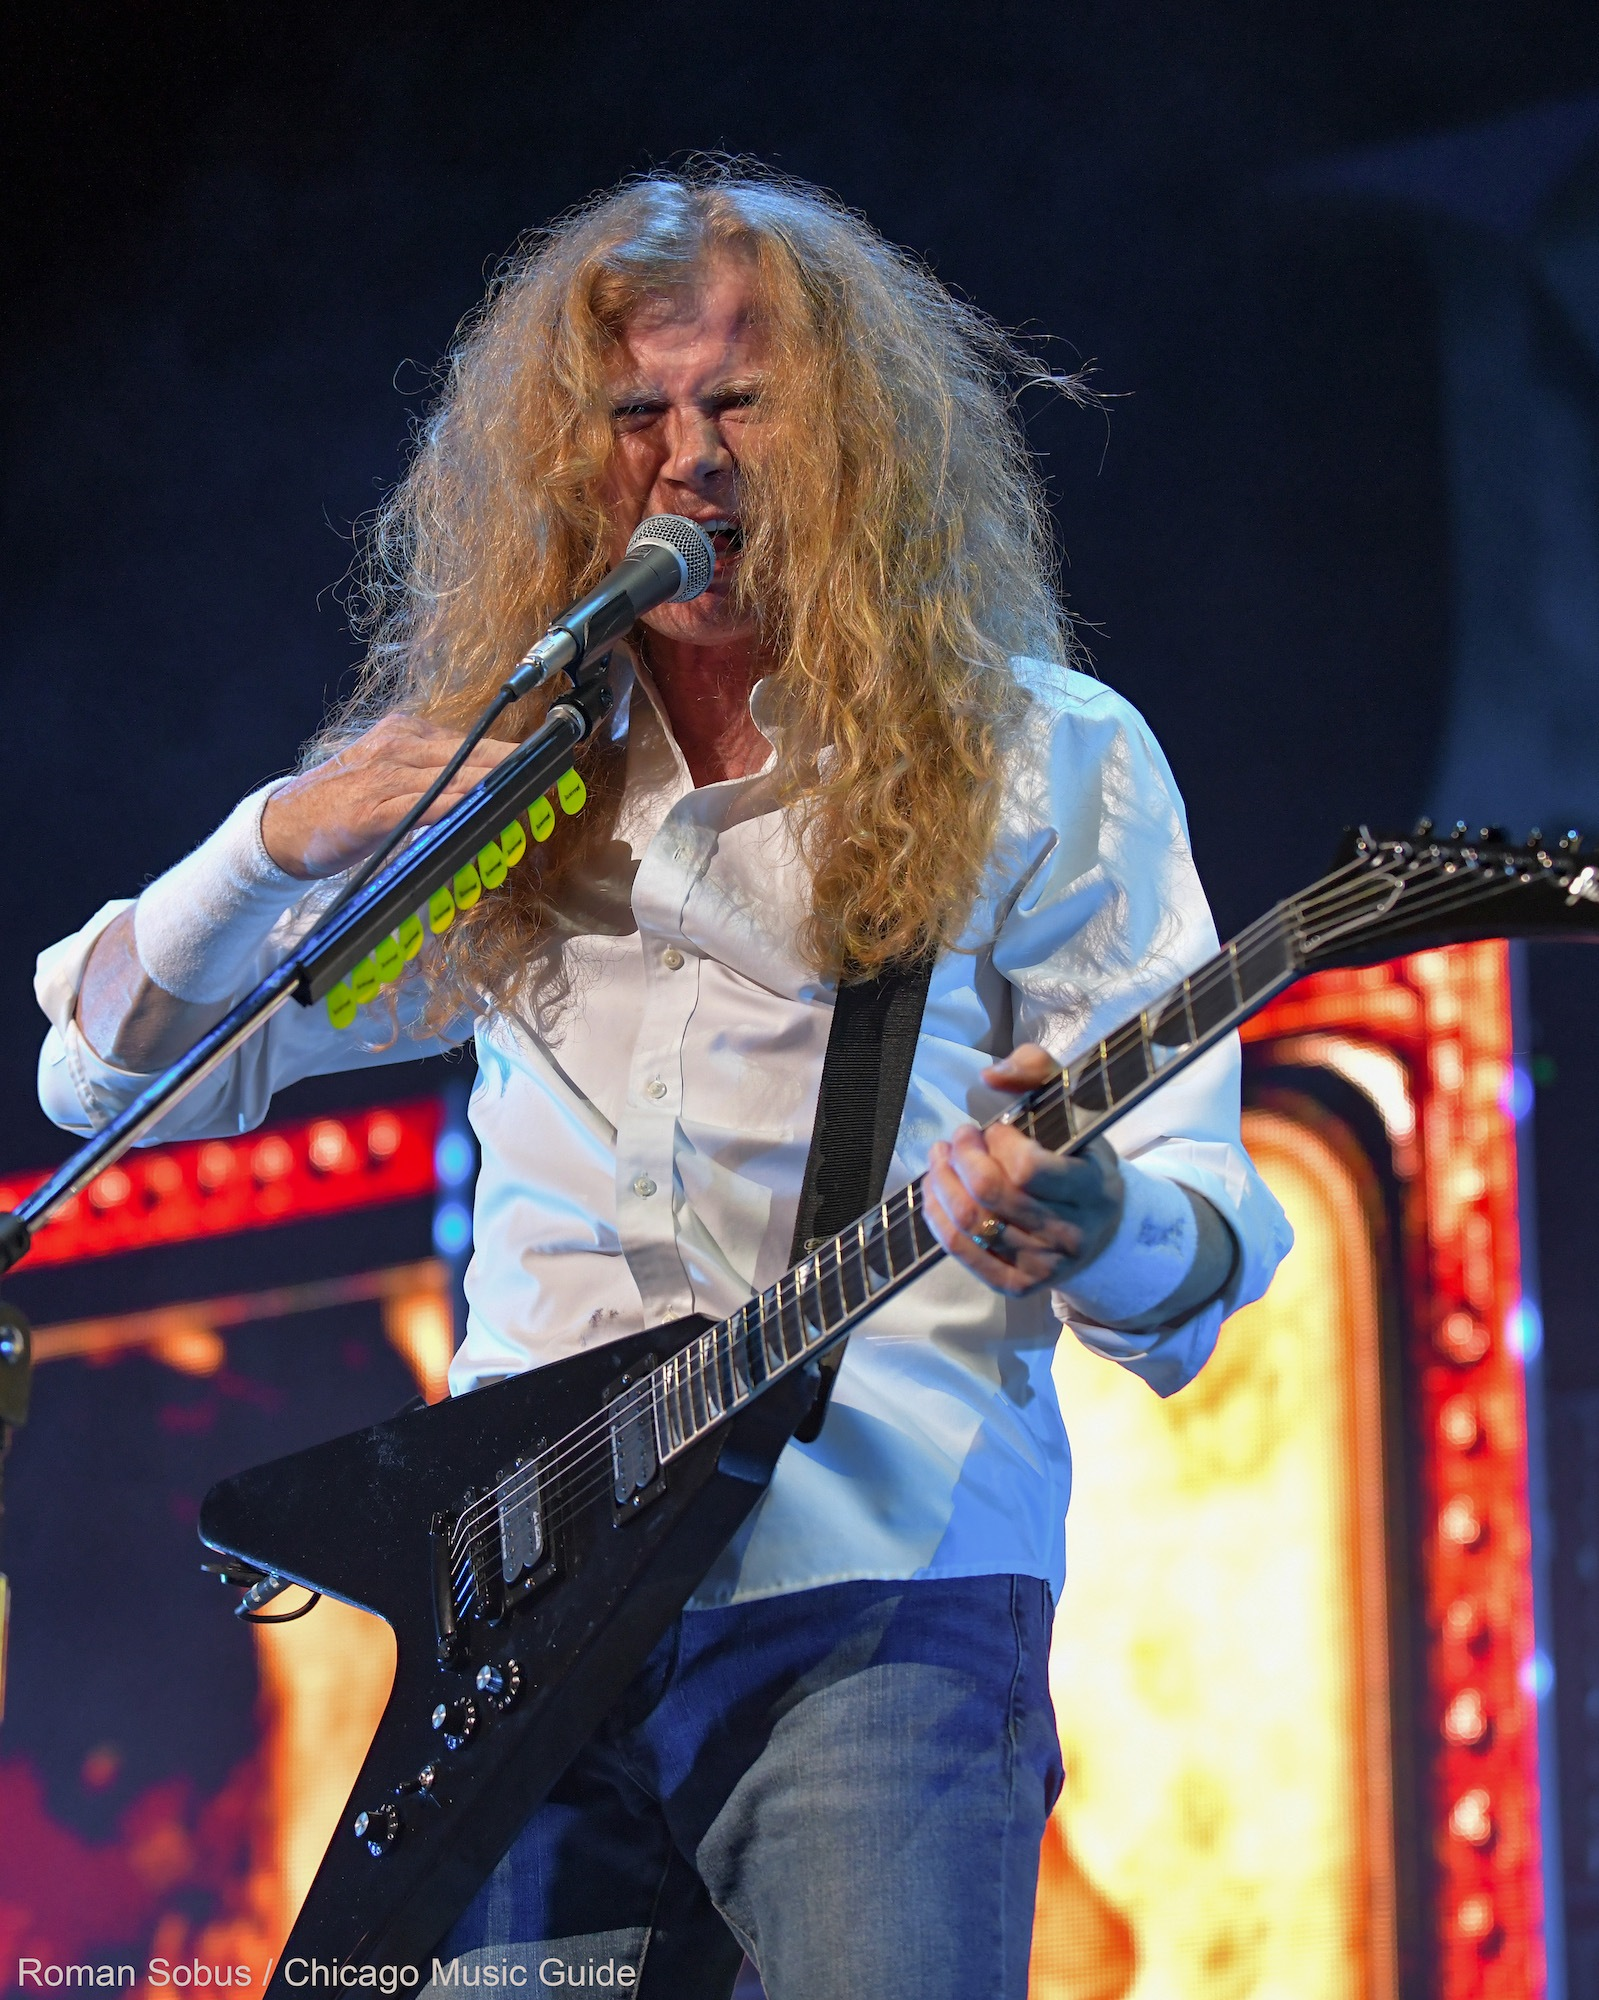 Megadeth Live at Hollywood Casino Amphitheatre [GALLERY] 1